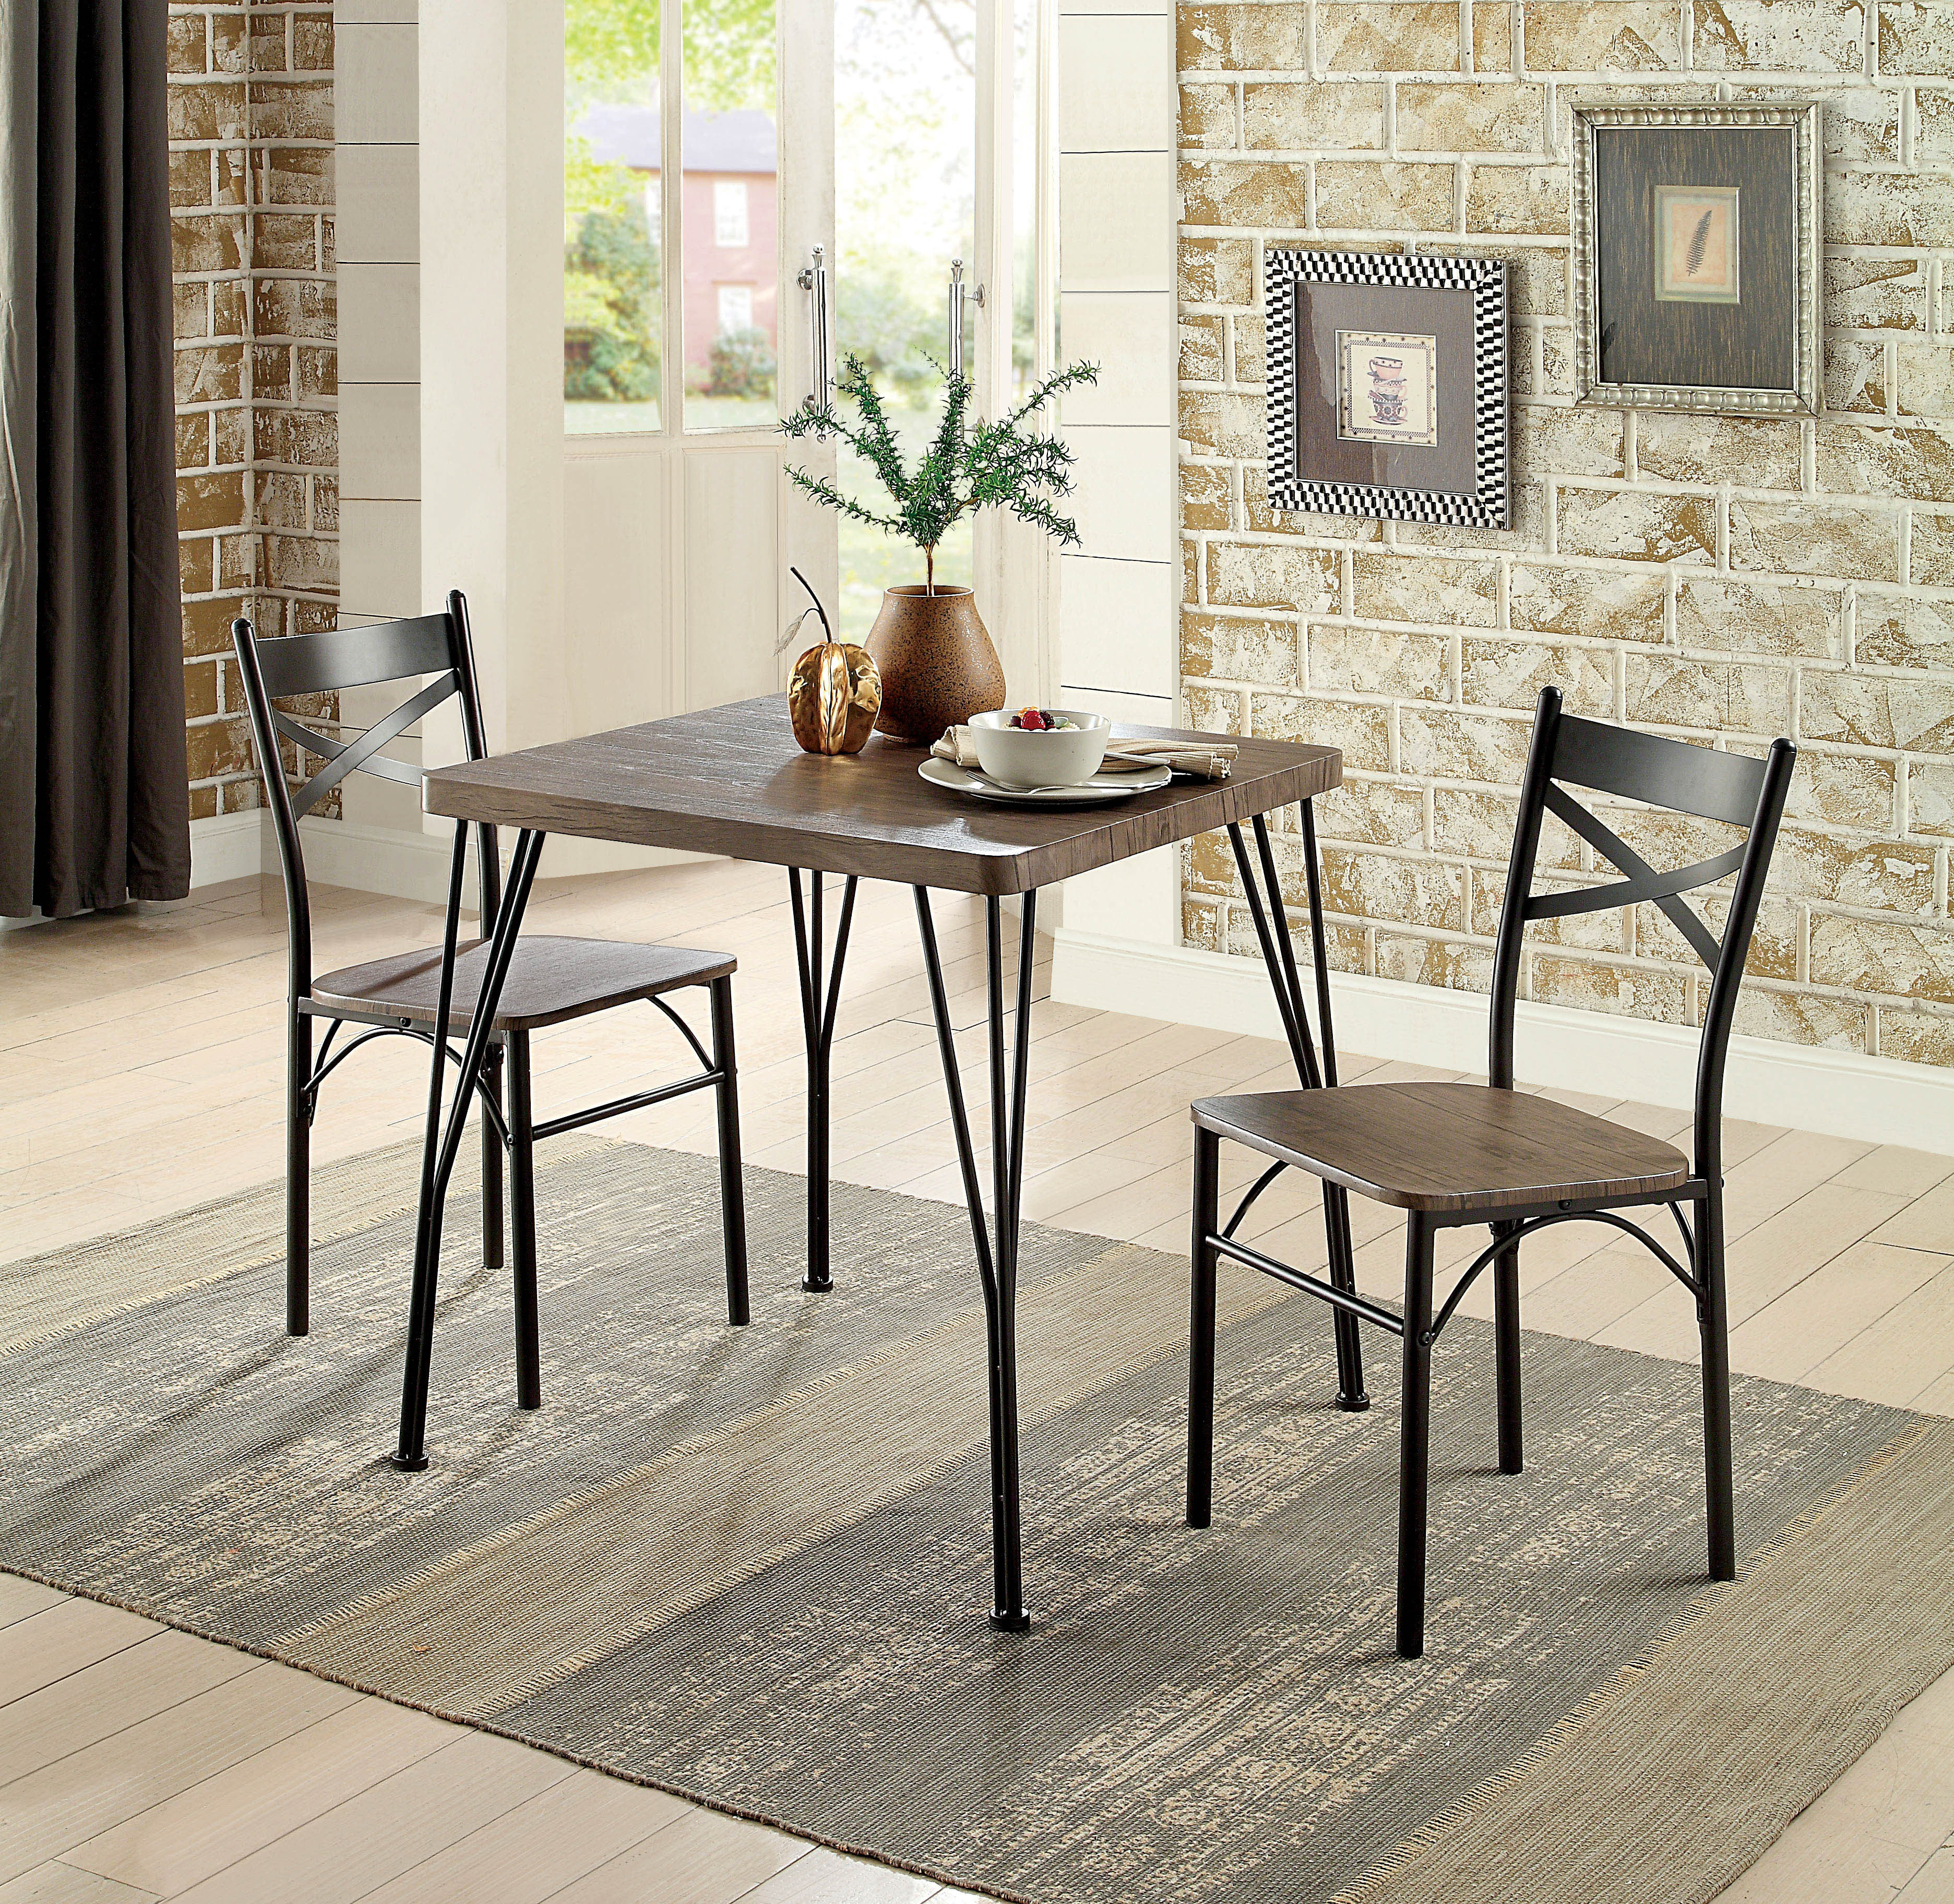 Guertin 3 Piece Dining Set For Current Tejeda 5 Piece Dining Sets (View 13 of 20)